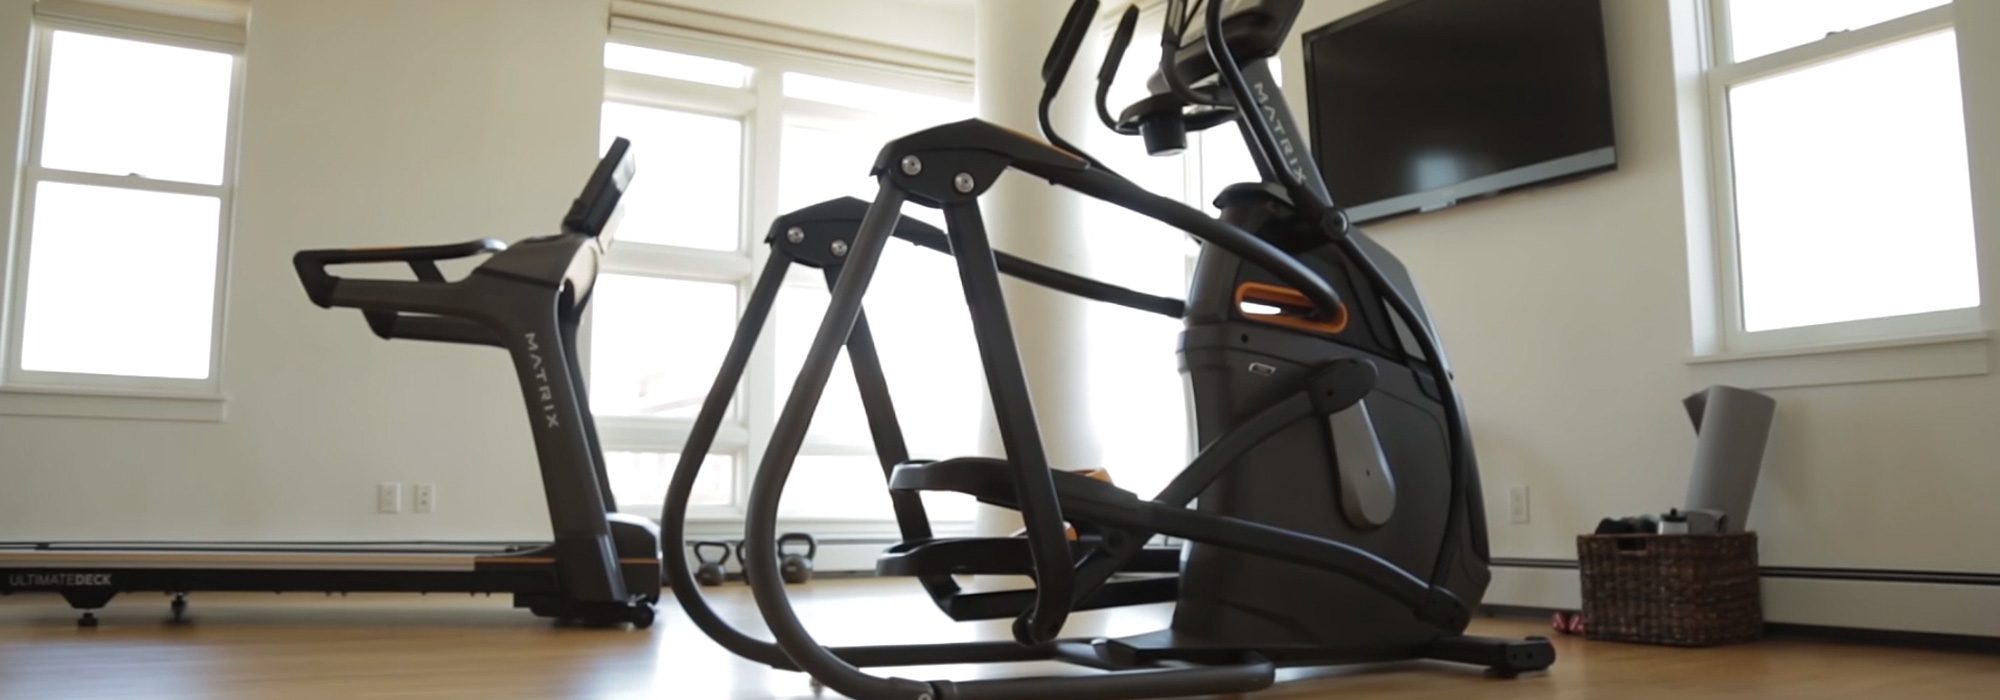 Matrix Fitness Equipment